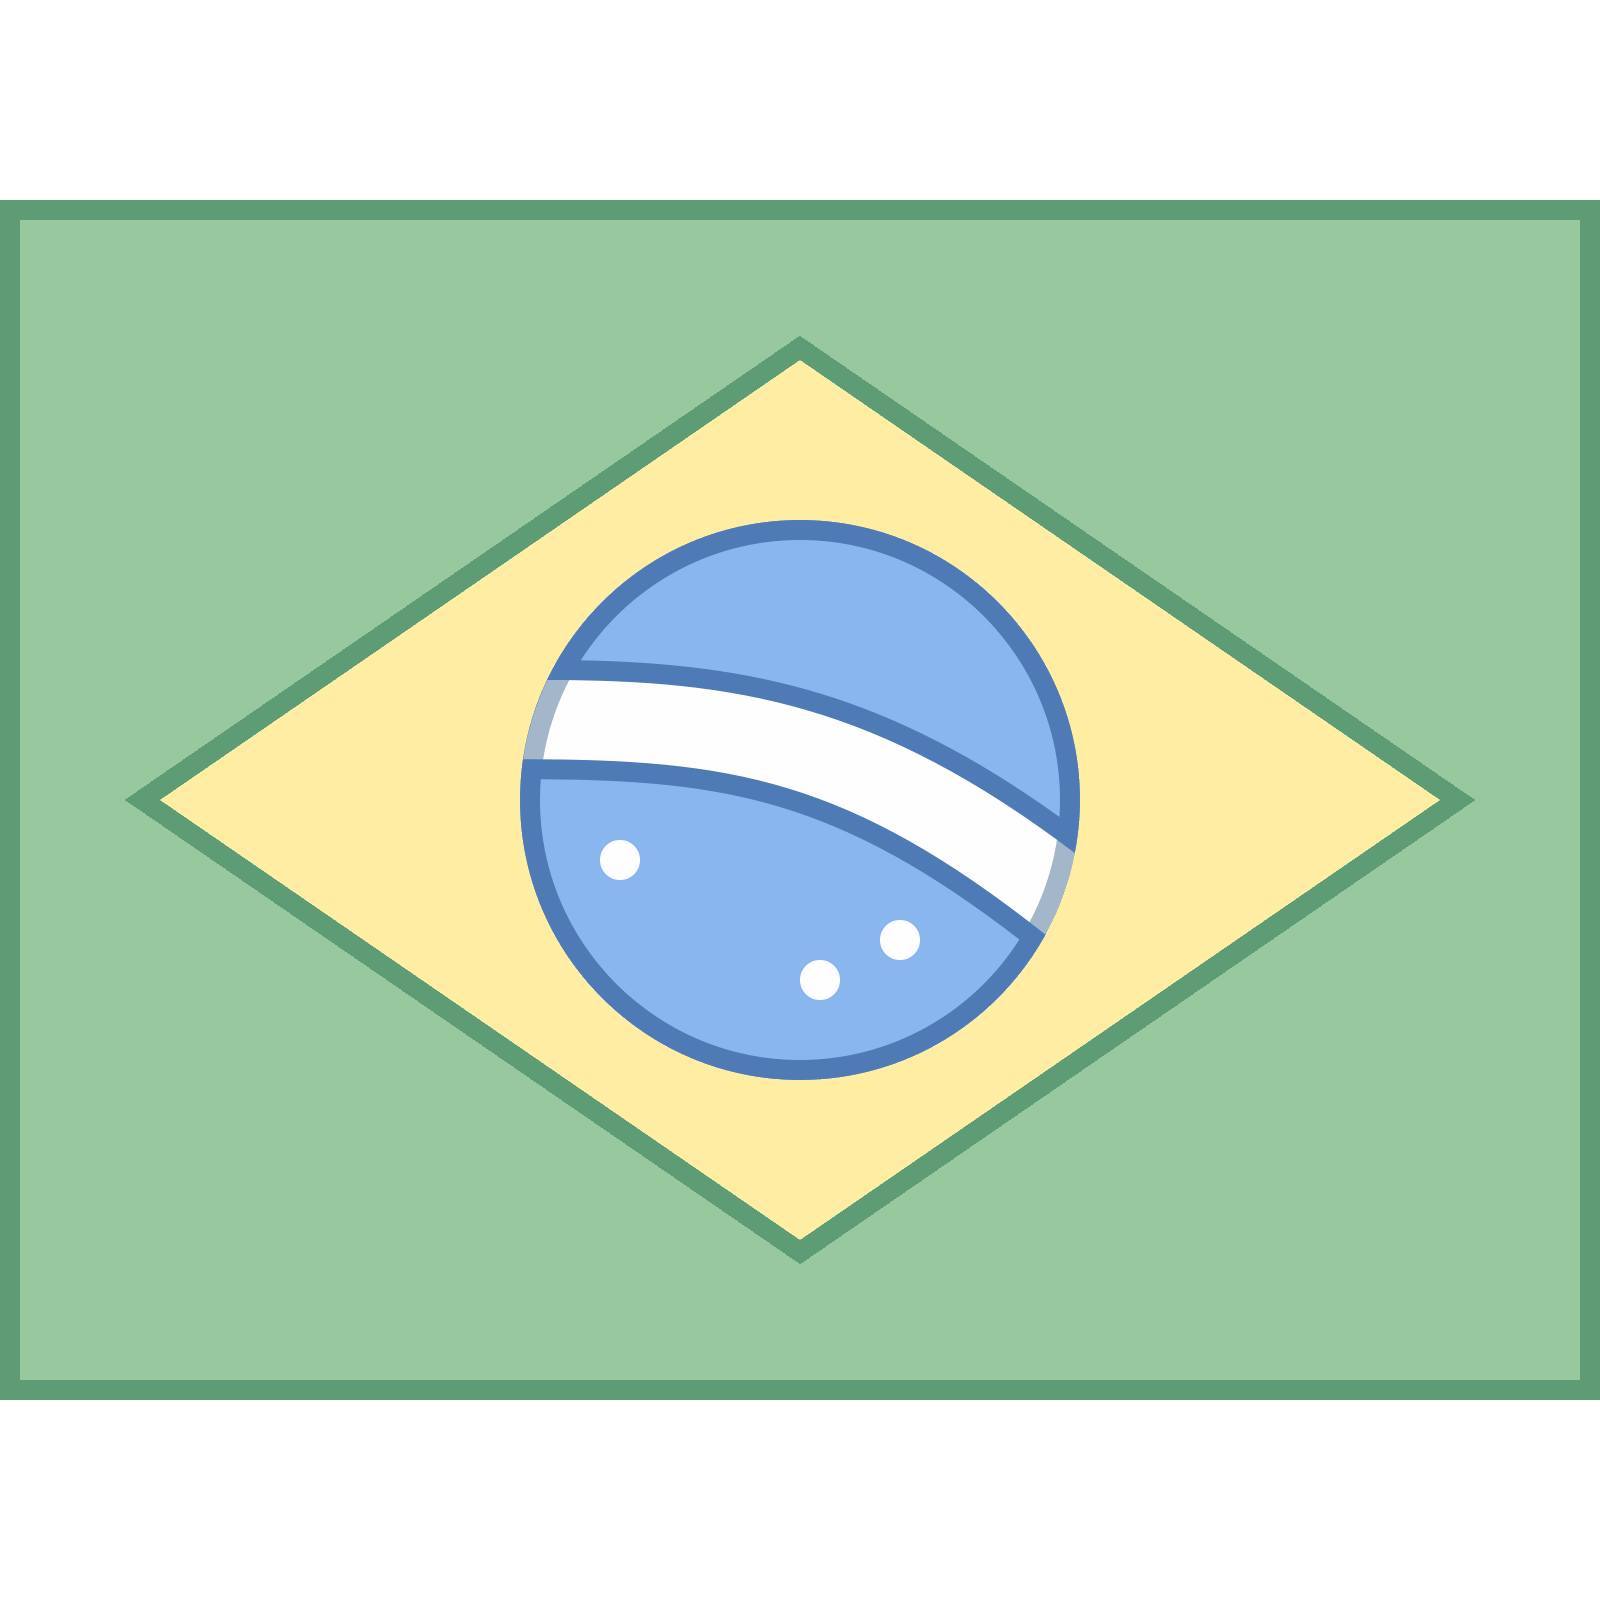 clipart freeuse stock Brazil icon free download. Vector contains tourism